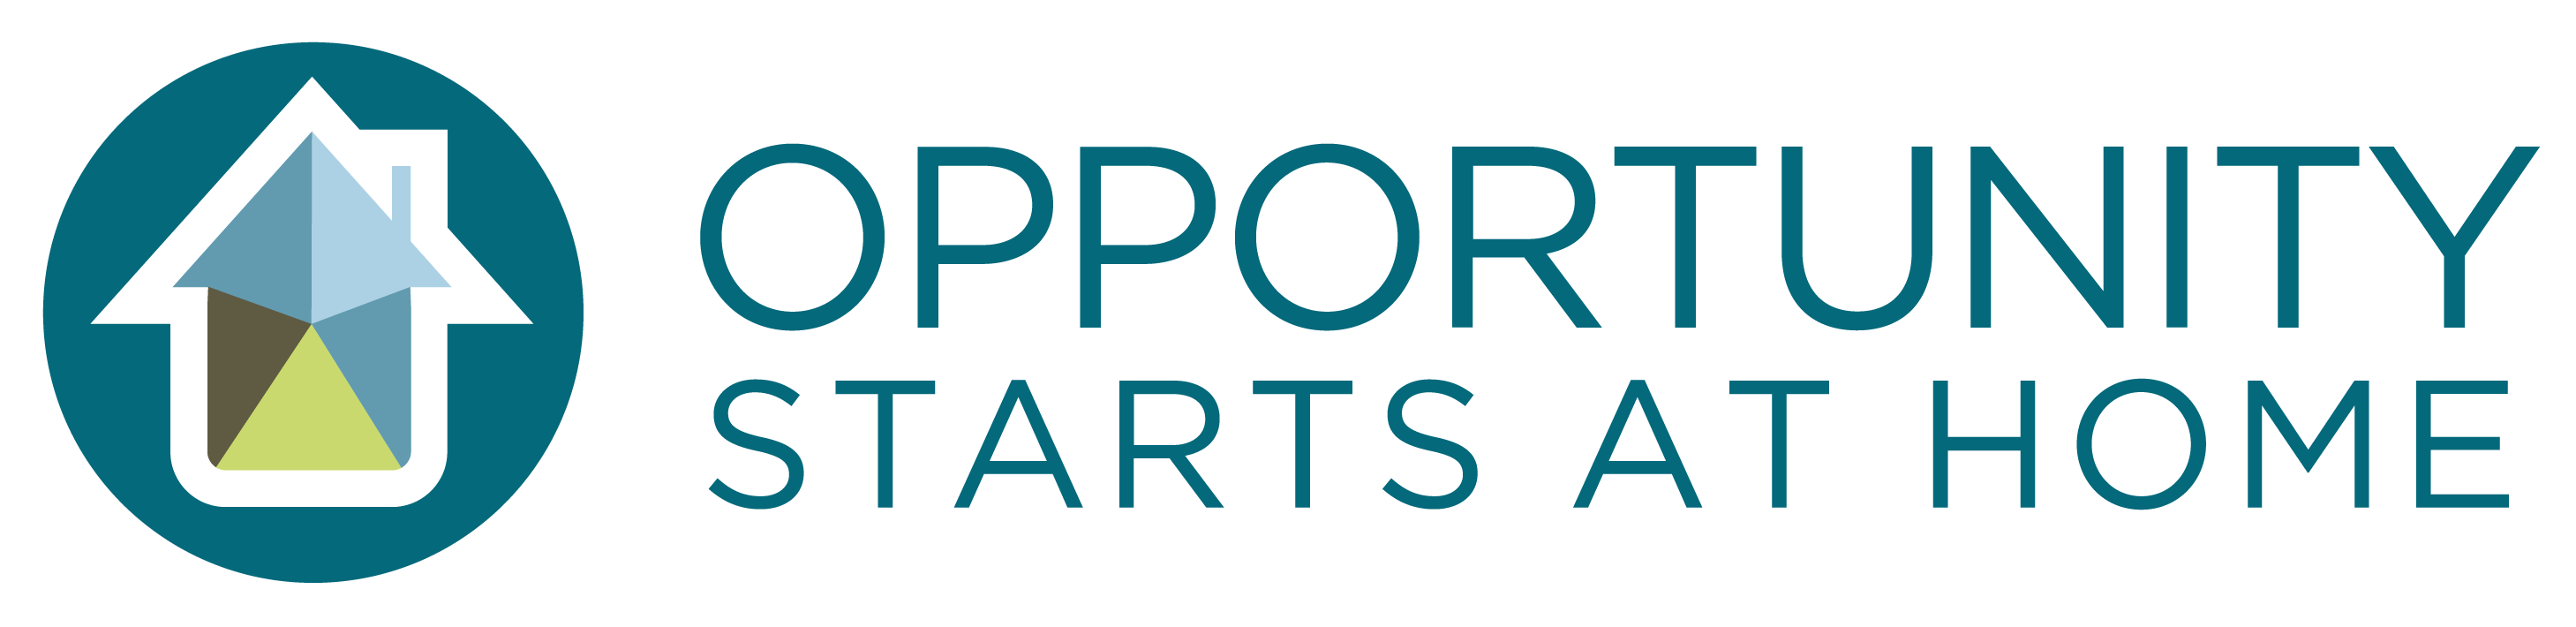 Opportunity Starts at Home logo